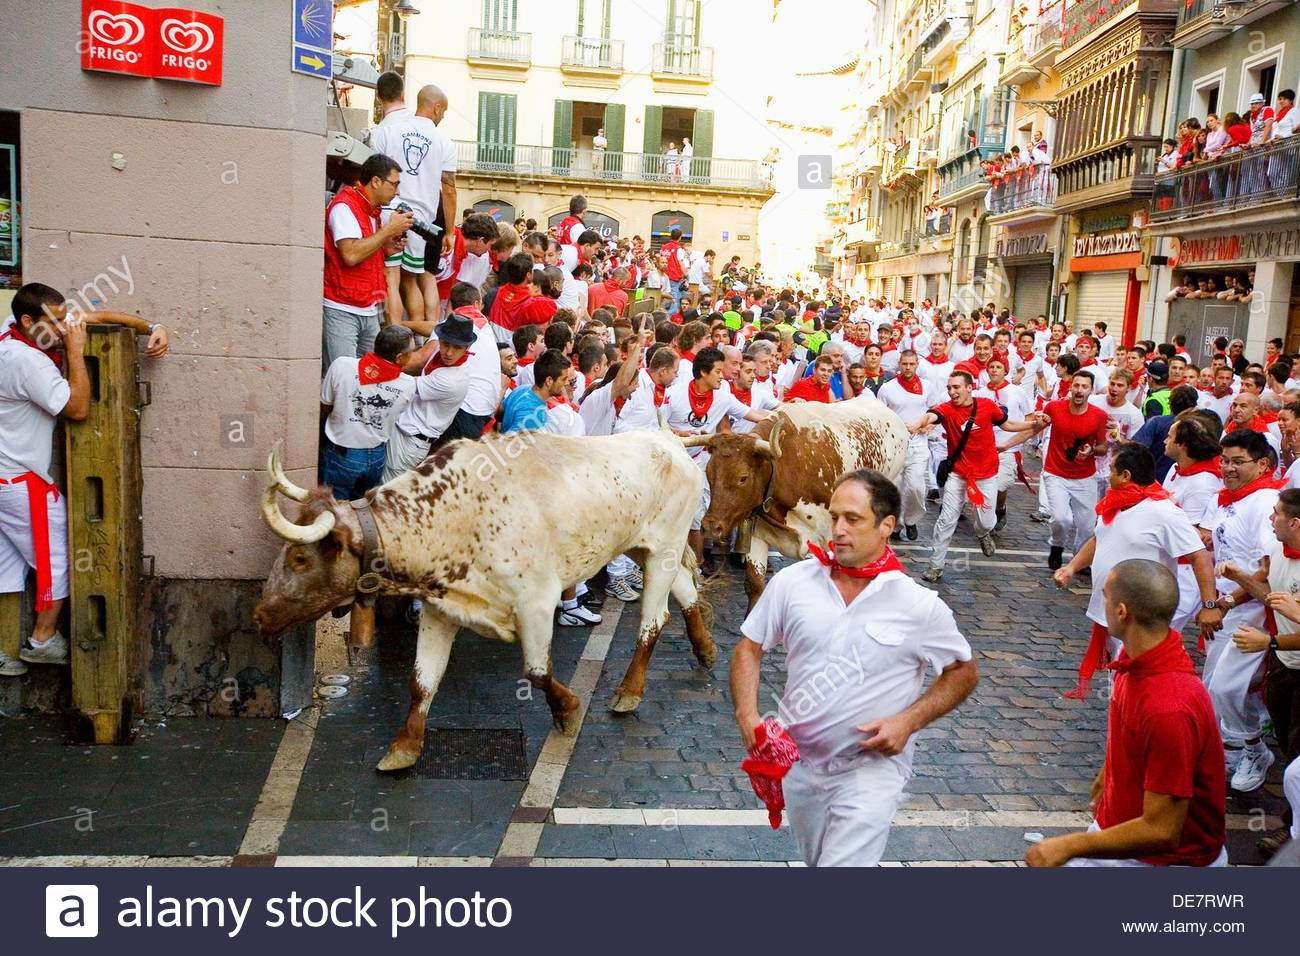 Encierro, the running of the bulls, Fiesta de San Fermin, Festival of Stock P...